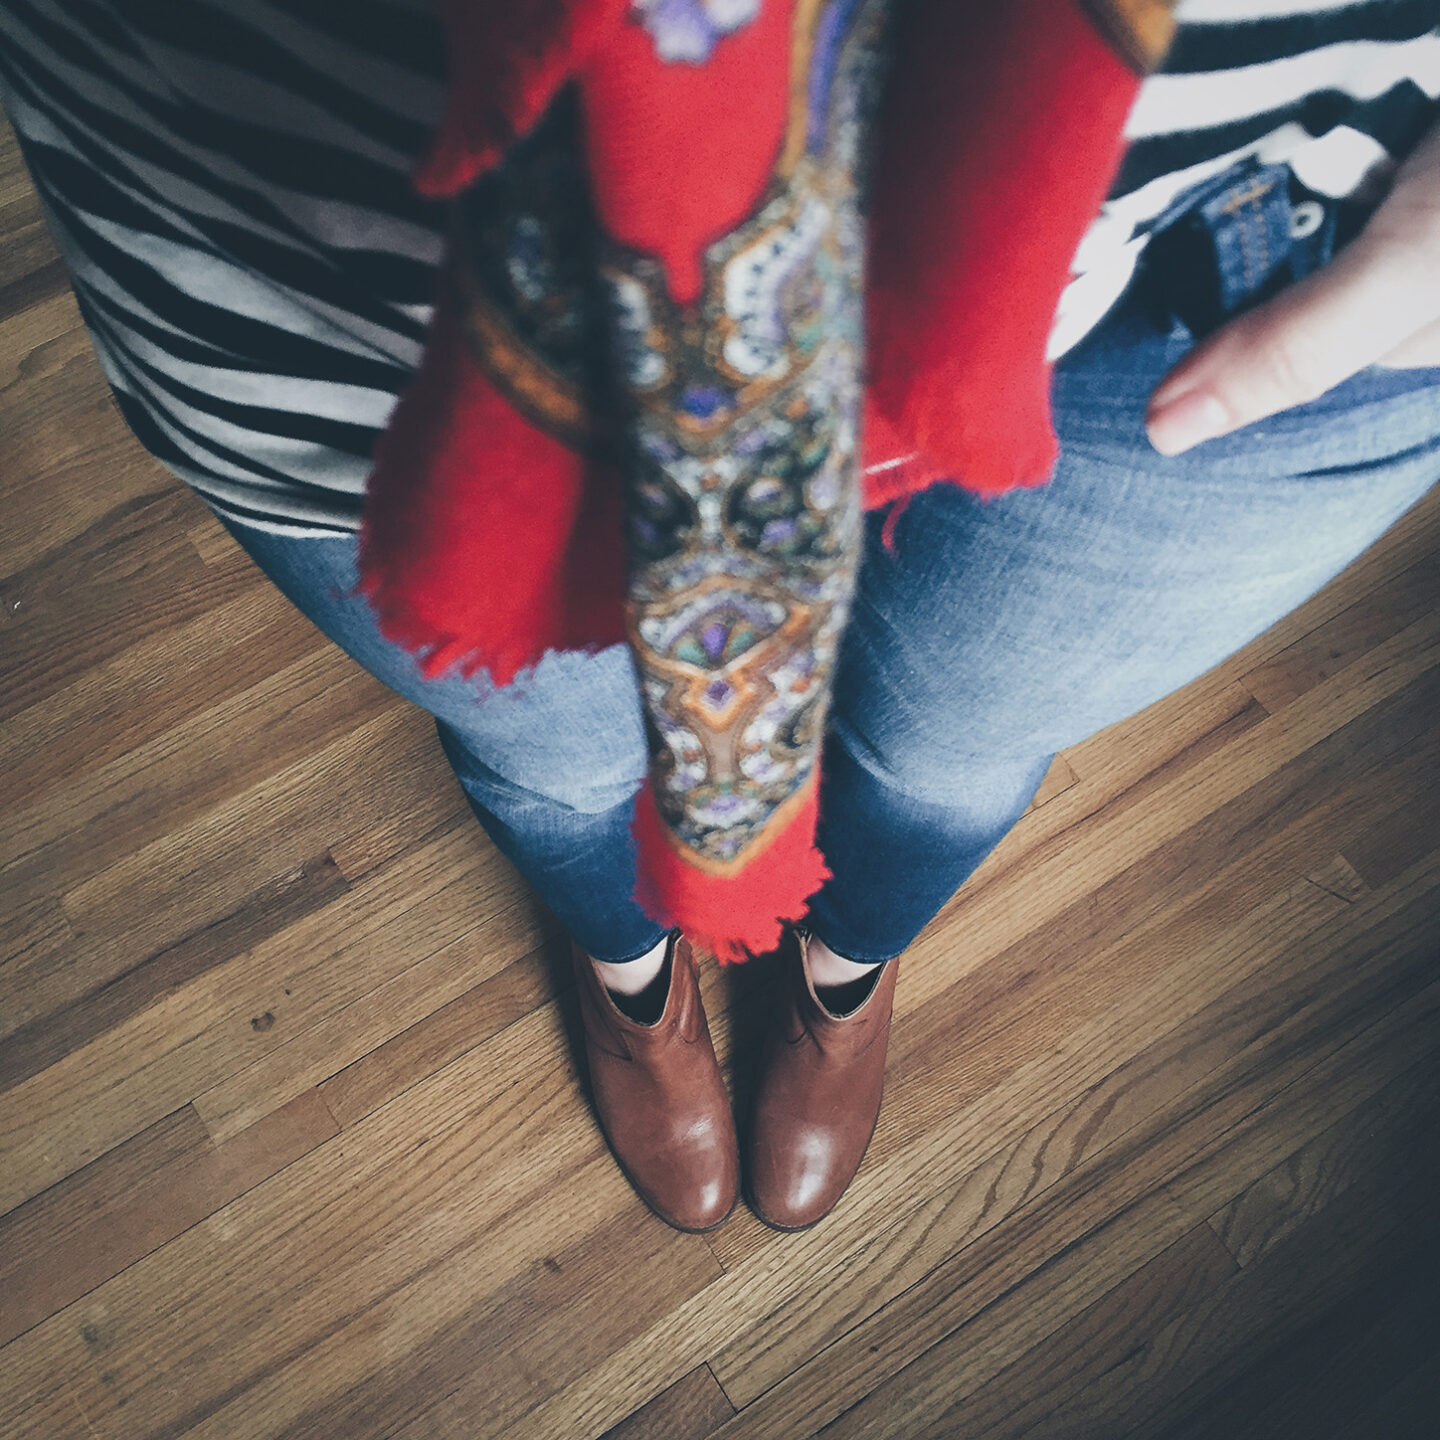 Karin Rambo of truncationblog.com shares her weekly outfit roundup for 4/14/16